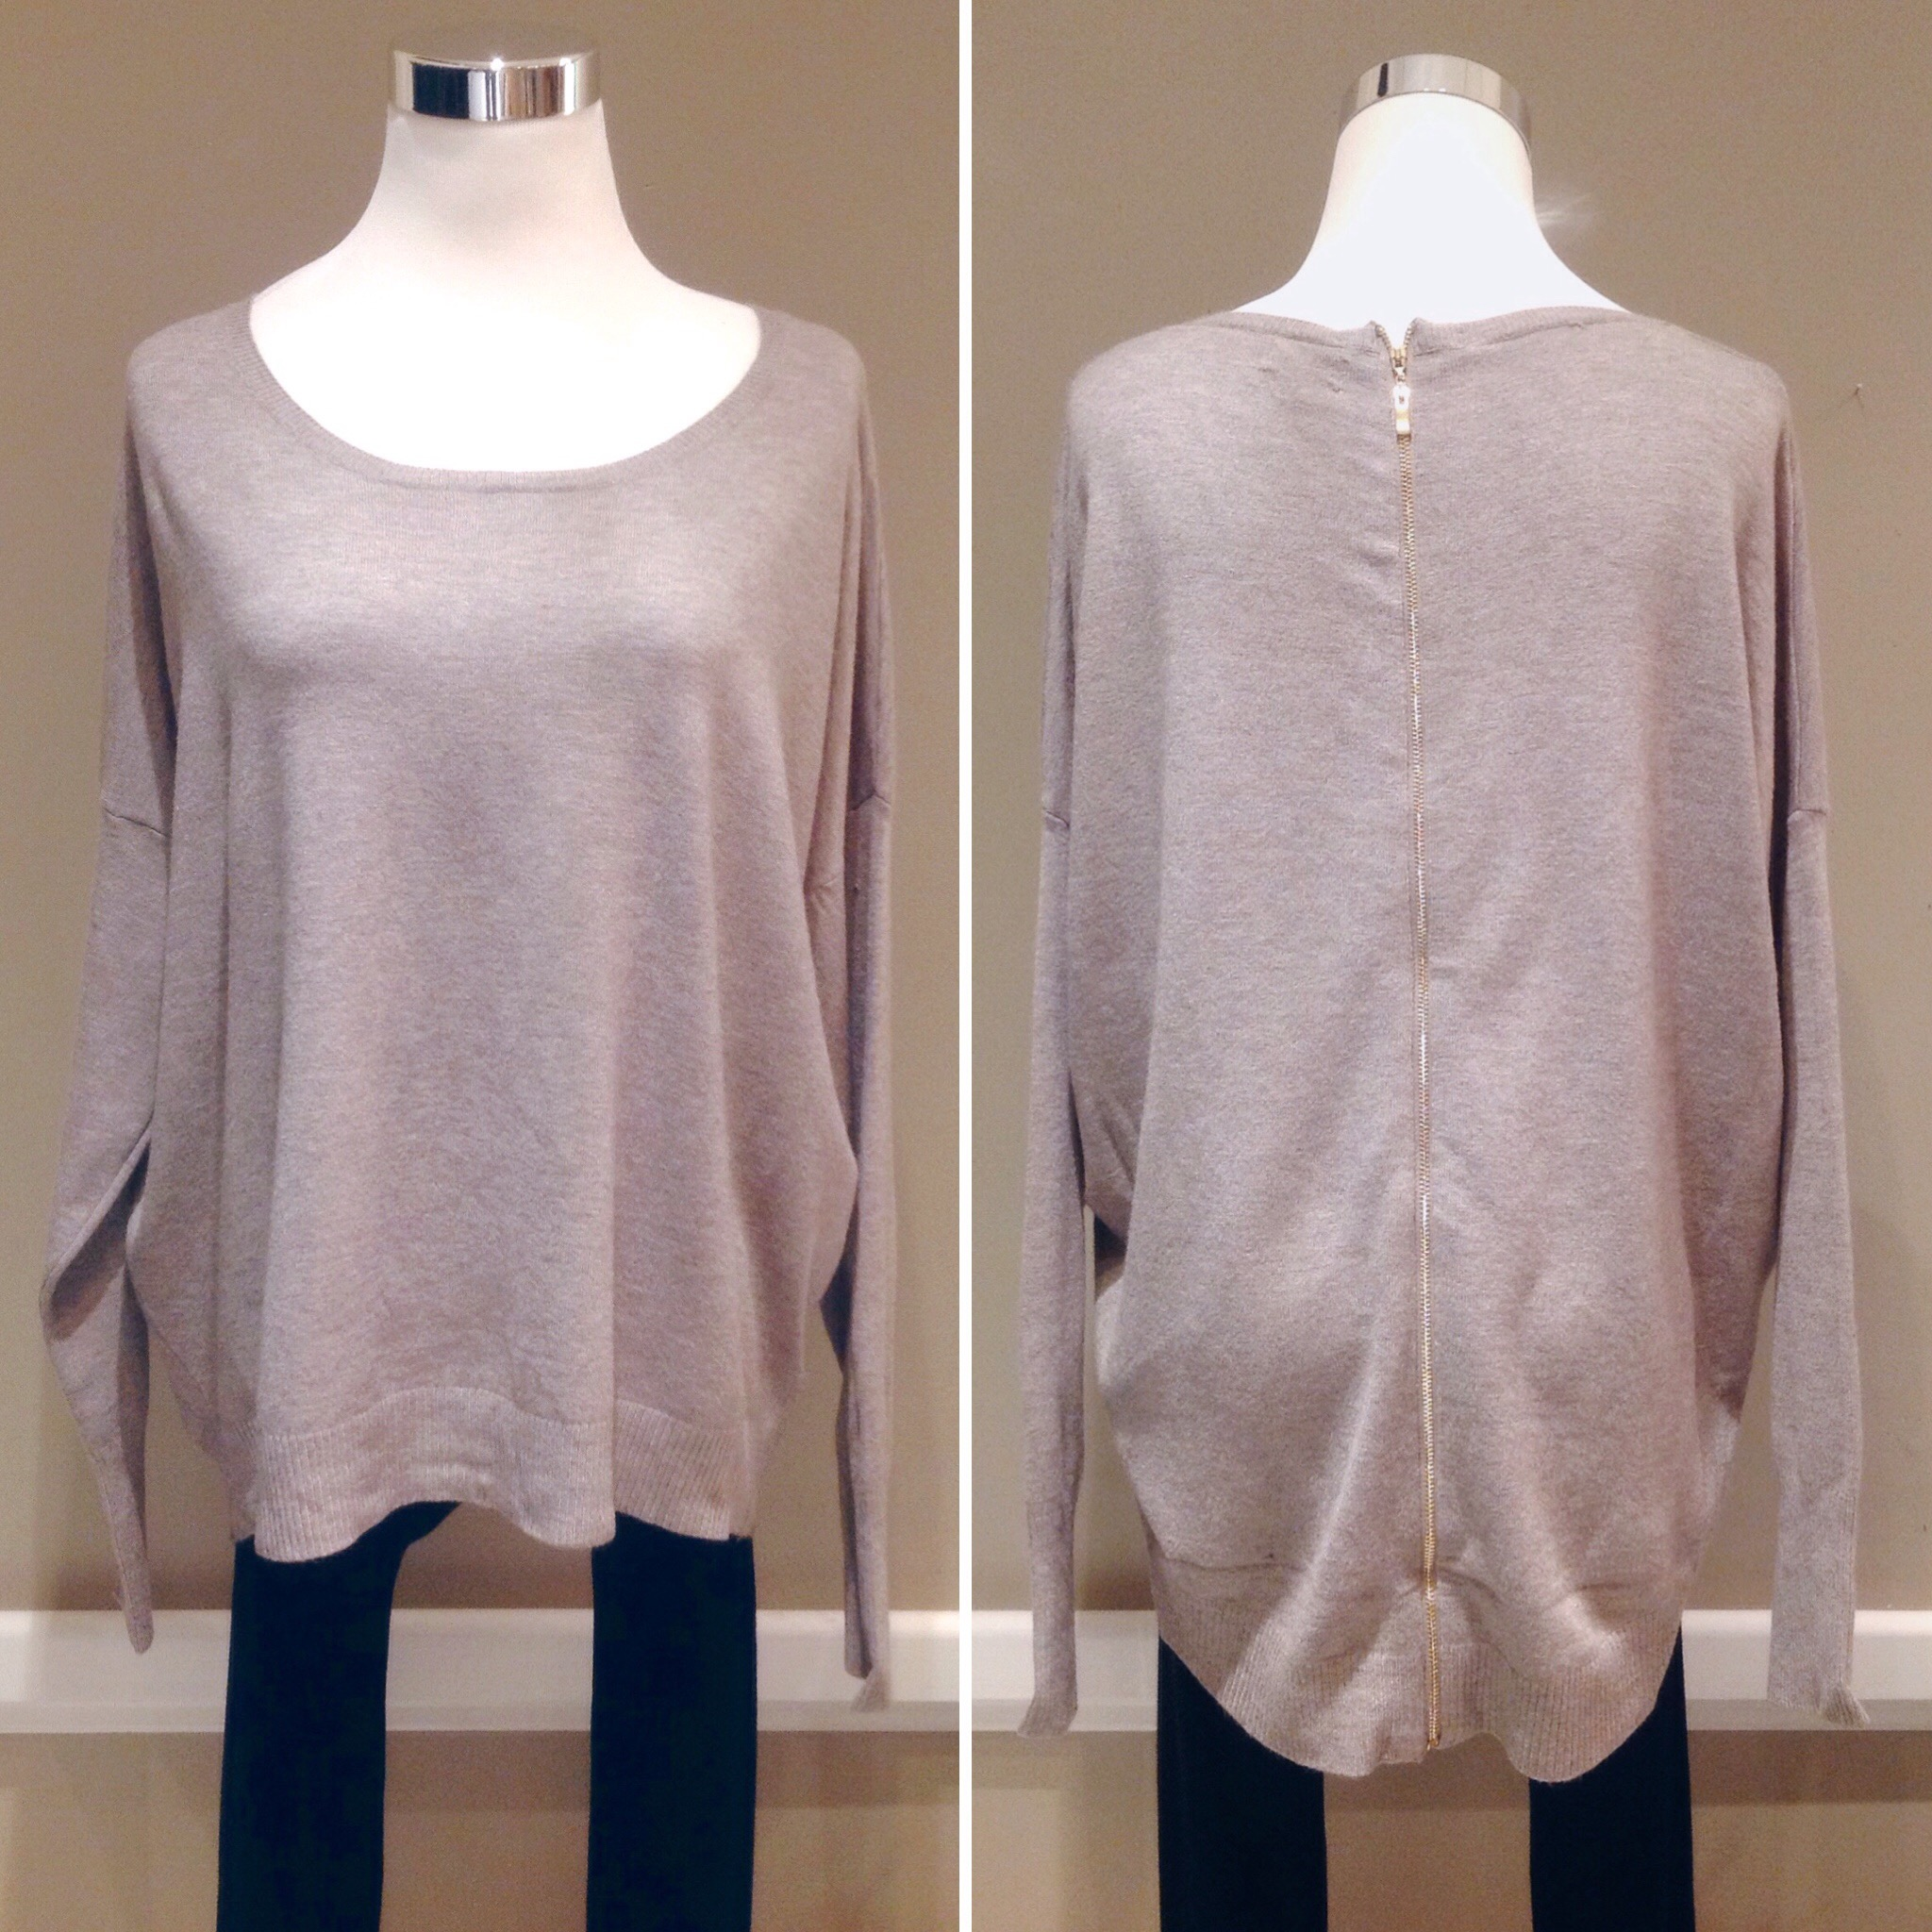 Ultra soft cotton/rayon sweater with back zipper in mocha, $42